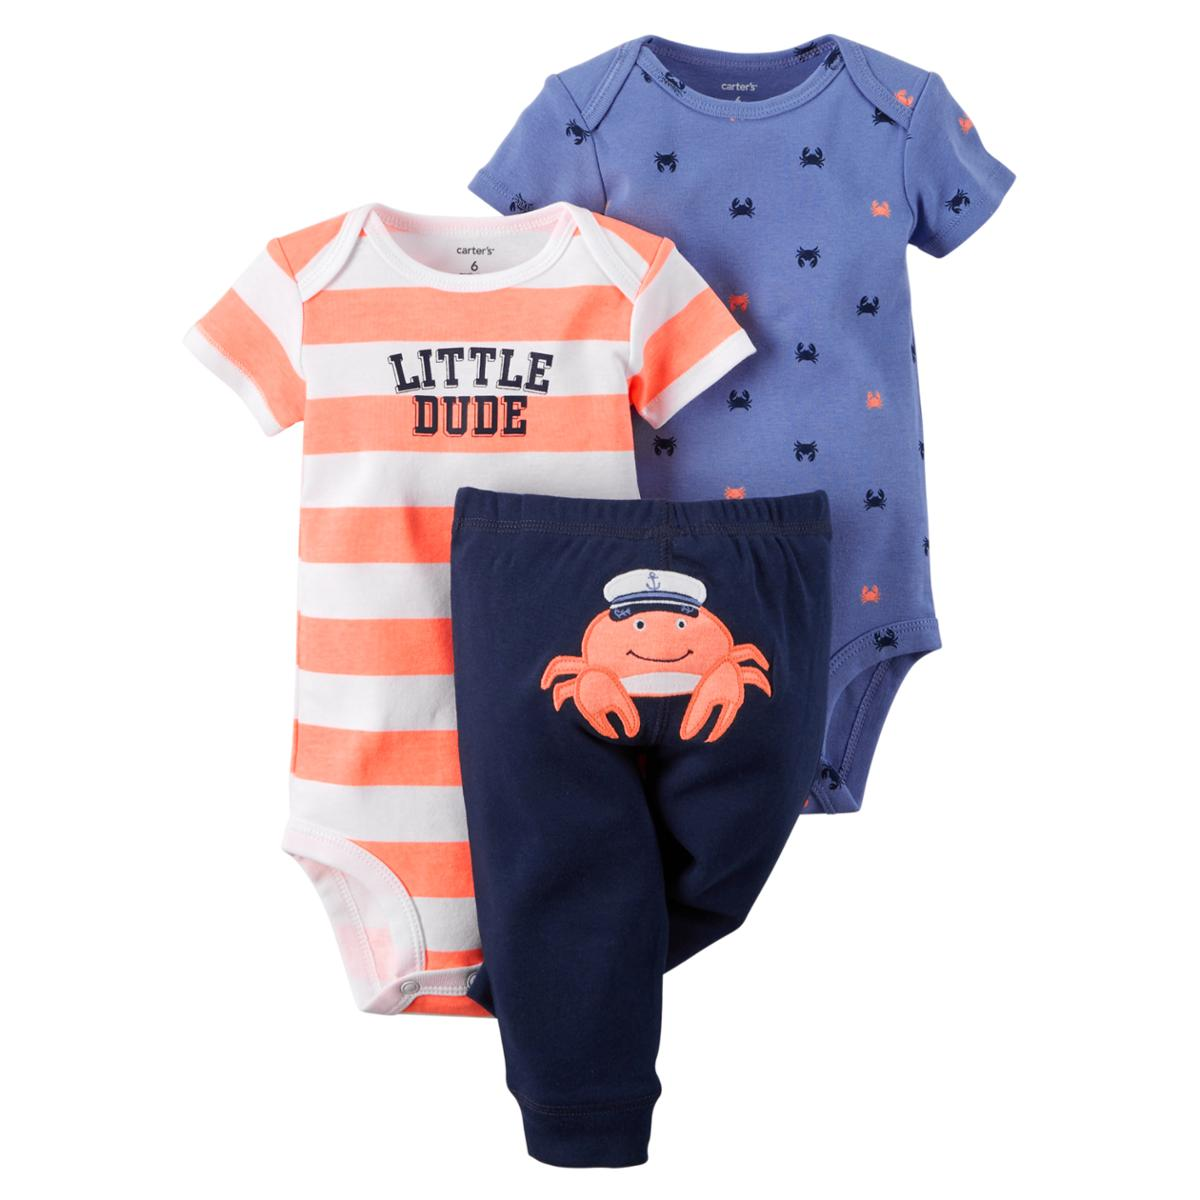 Flat 30% OFF* on Entire Carters Range